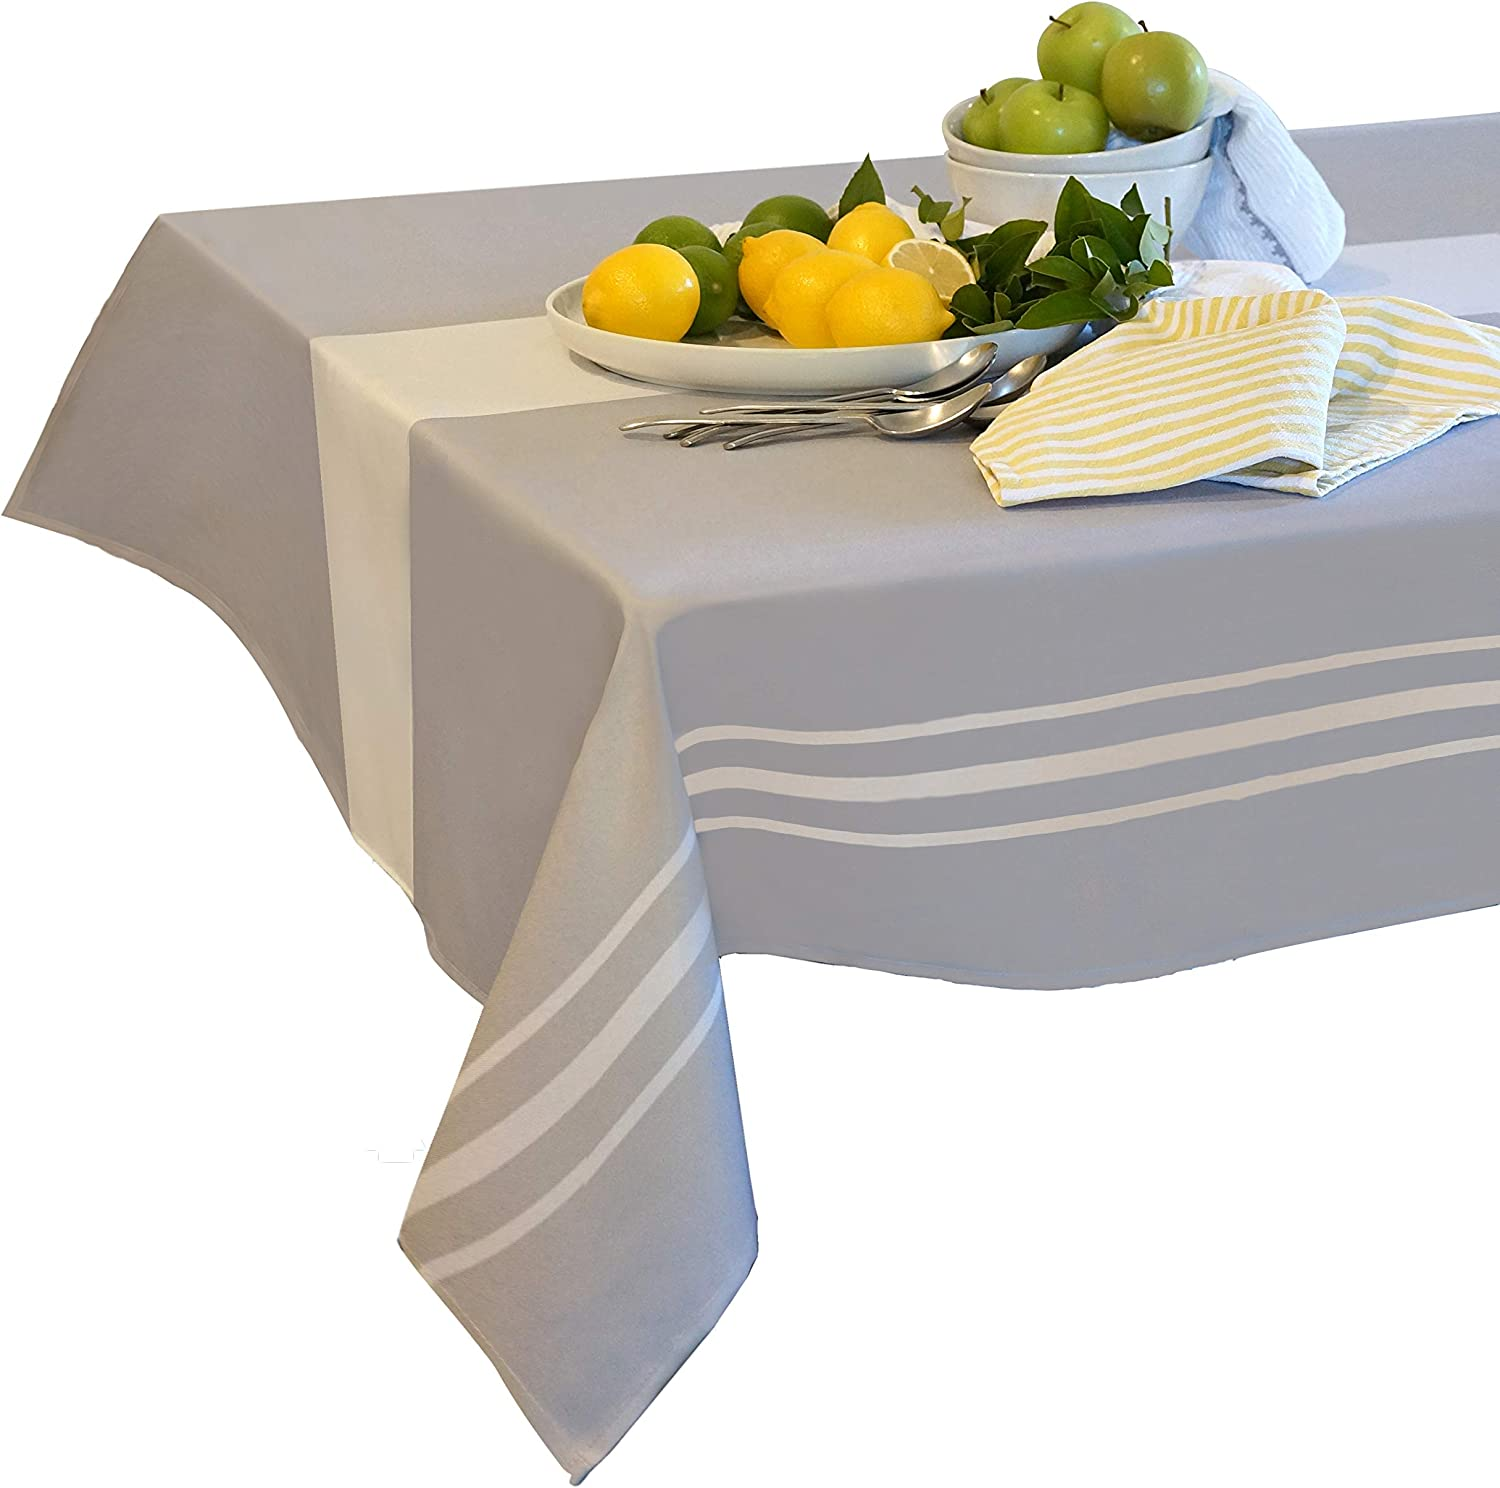 Tablecloth Rectangle 60x84 Grey and White Stripe Polyester Fabric for Indoor Outdoor Oval 6-8 Seater for Family Gatherings Celebrations Picnic Camping Washable Anti-Fading Wrinkle Free